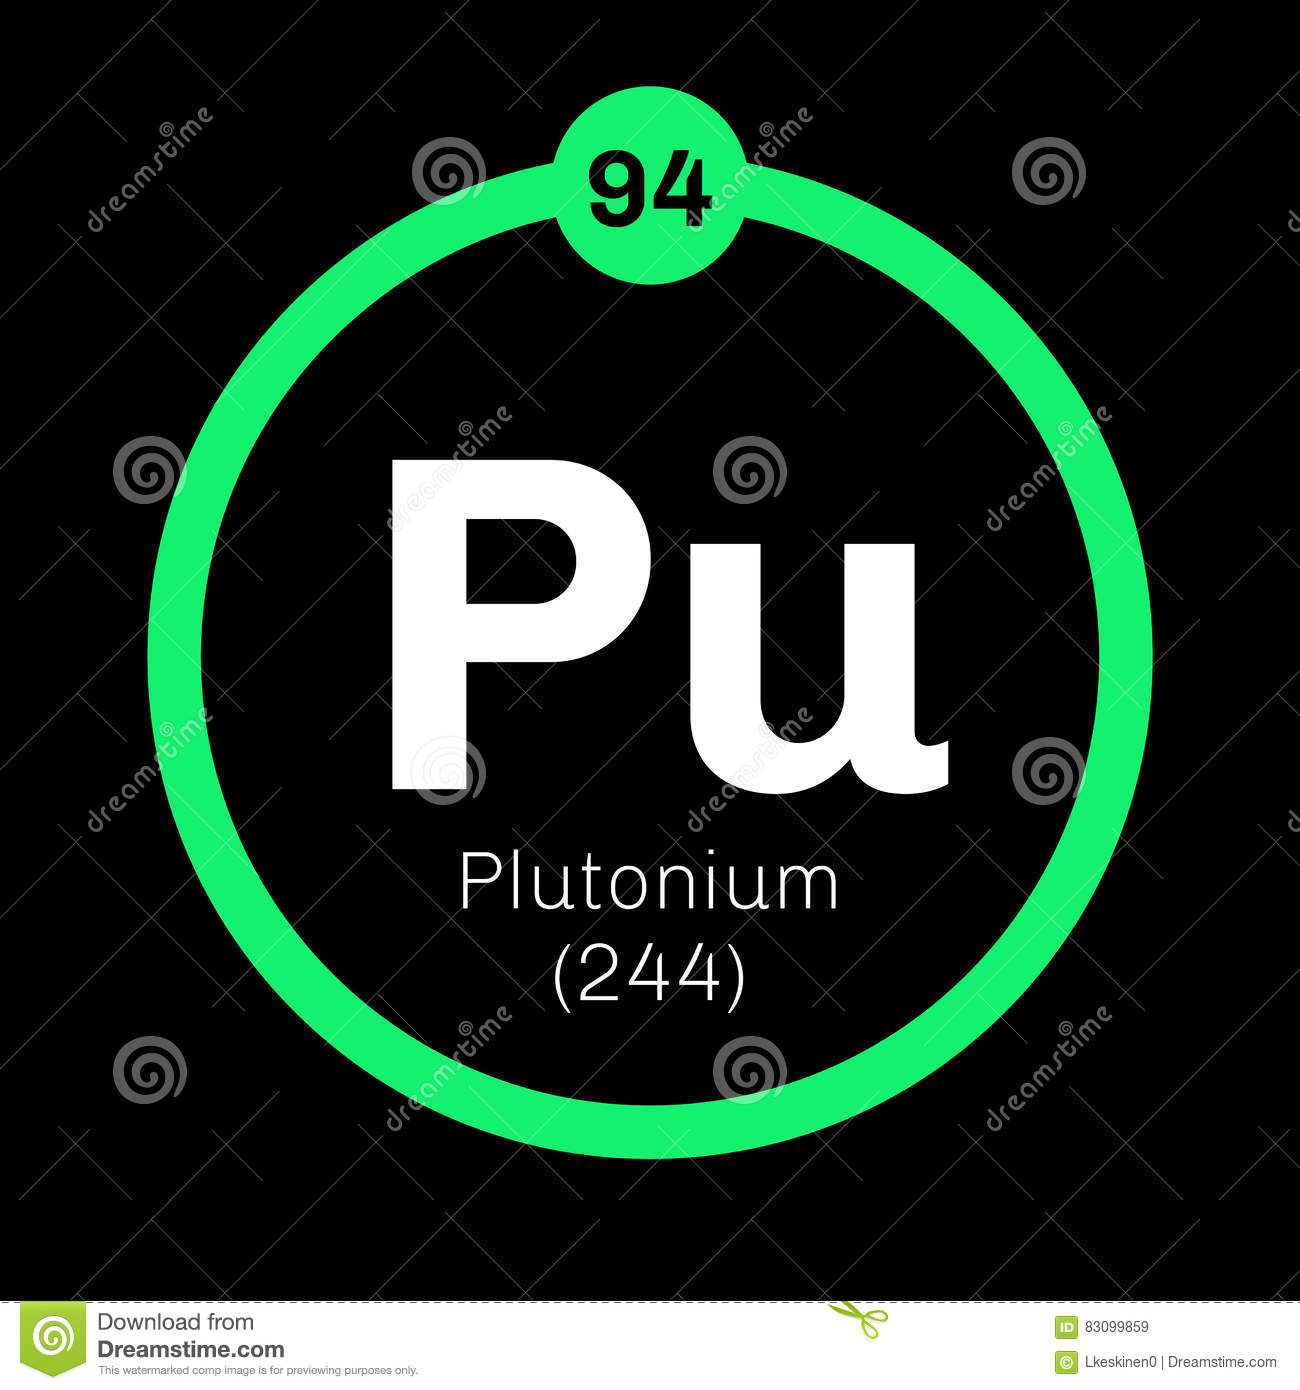 Plutonium stock photos royalty free images biocorpaavc Image collections